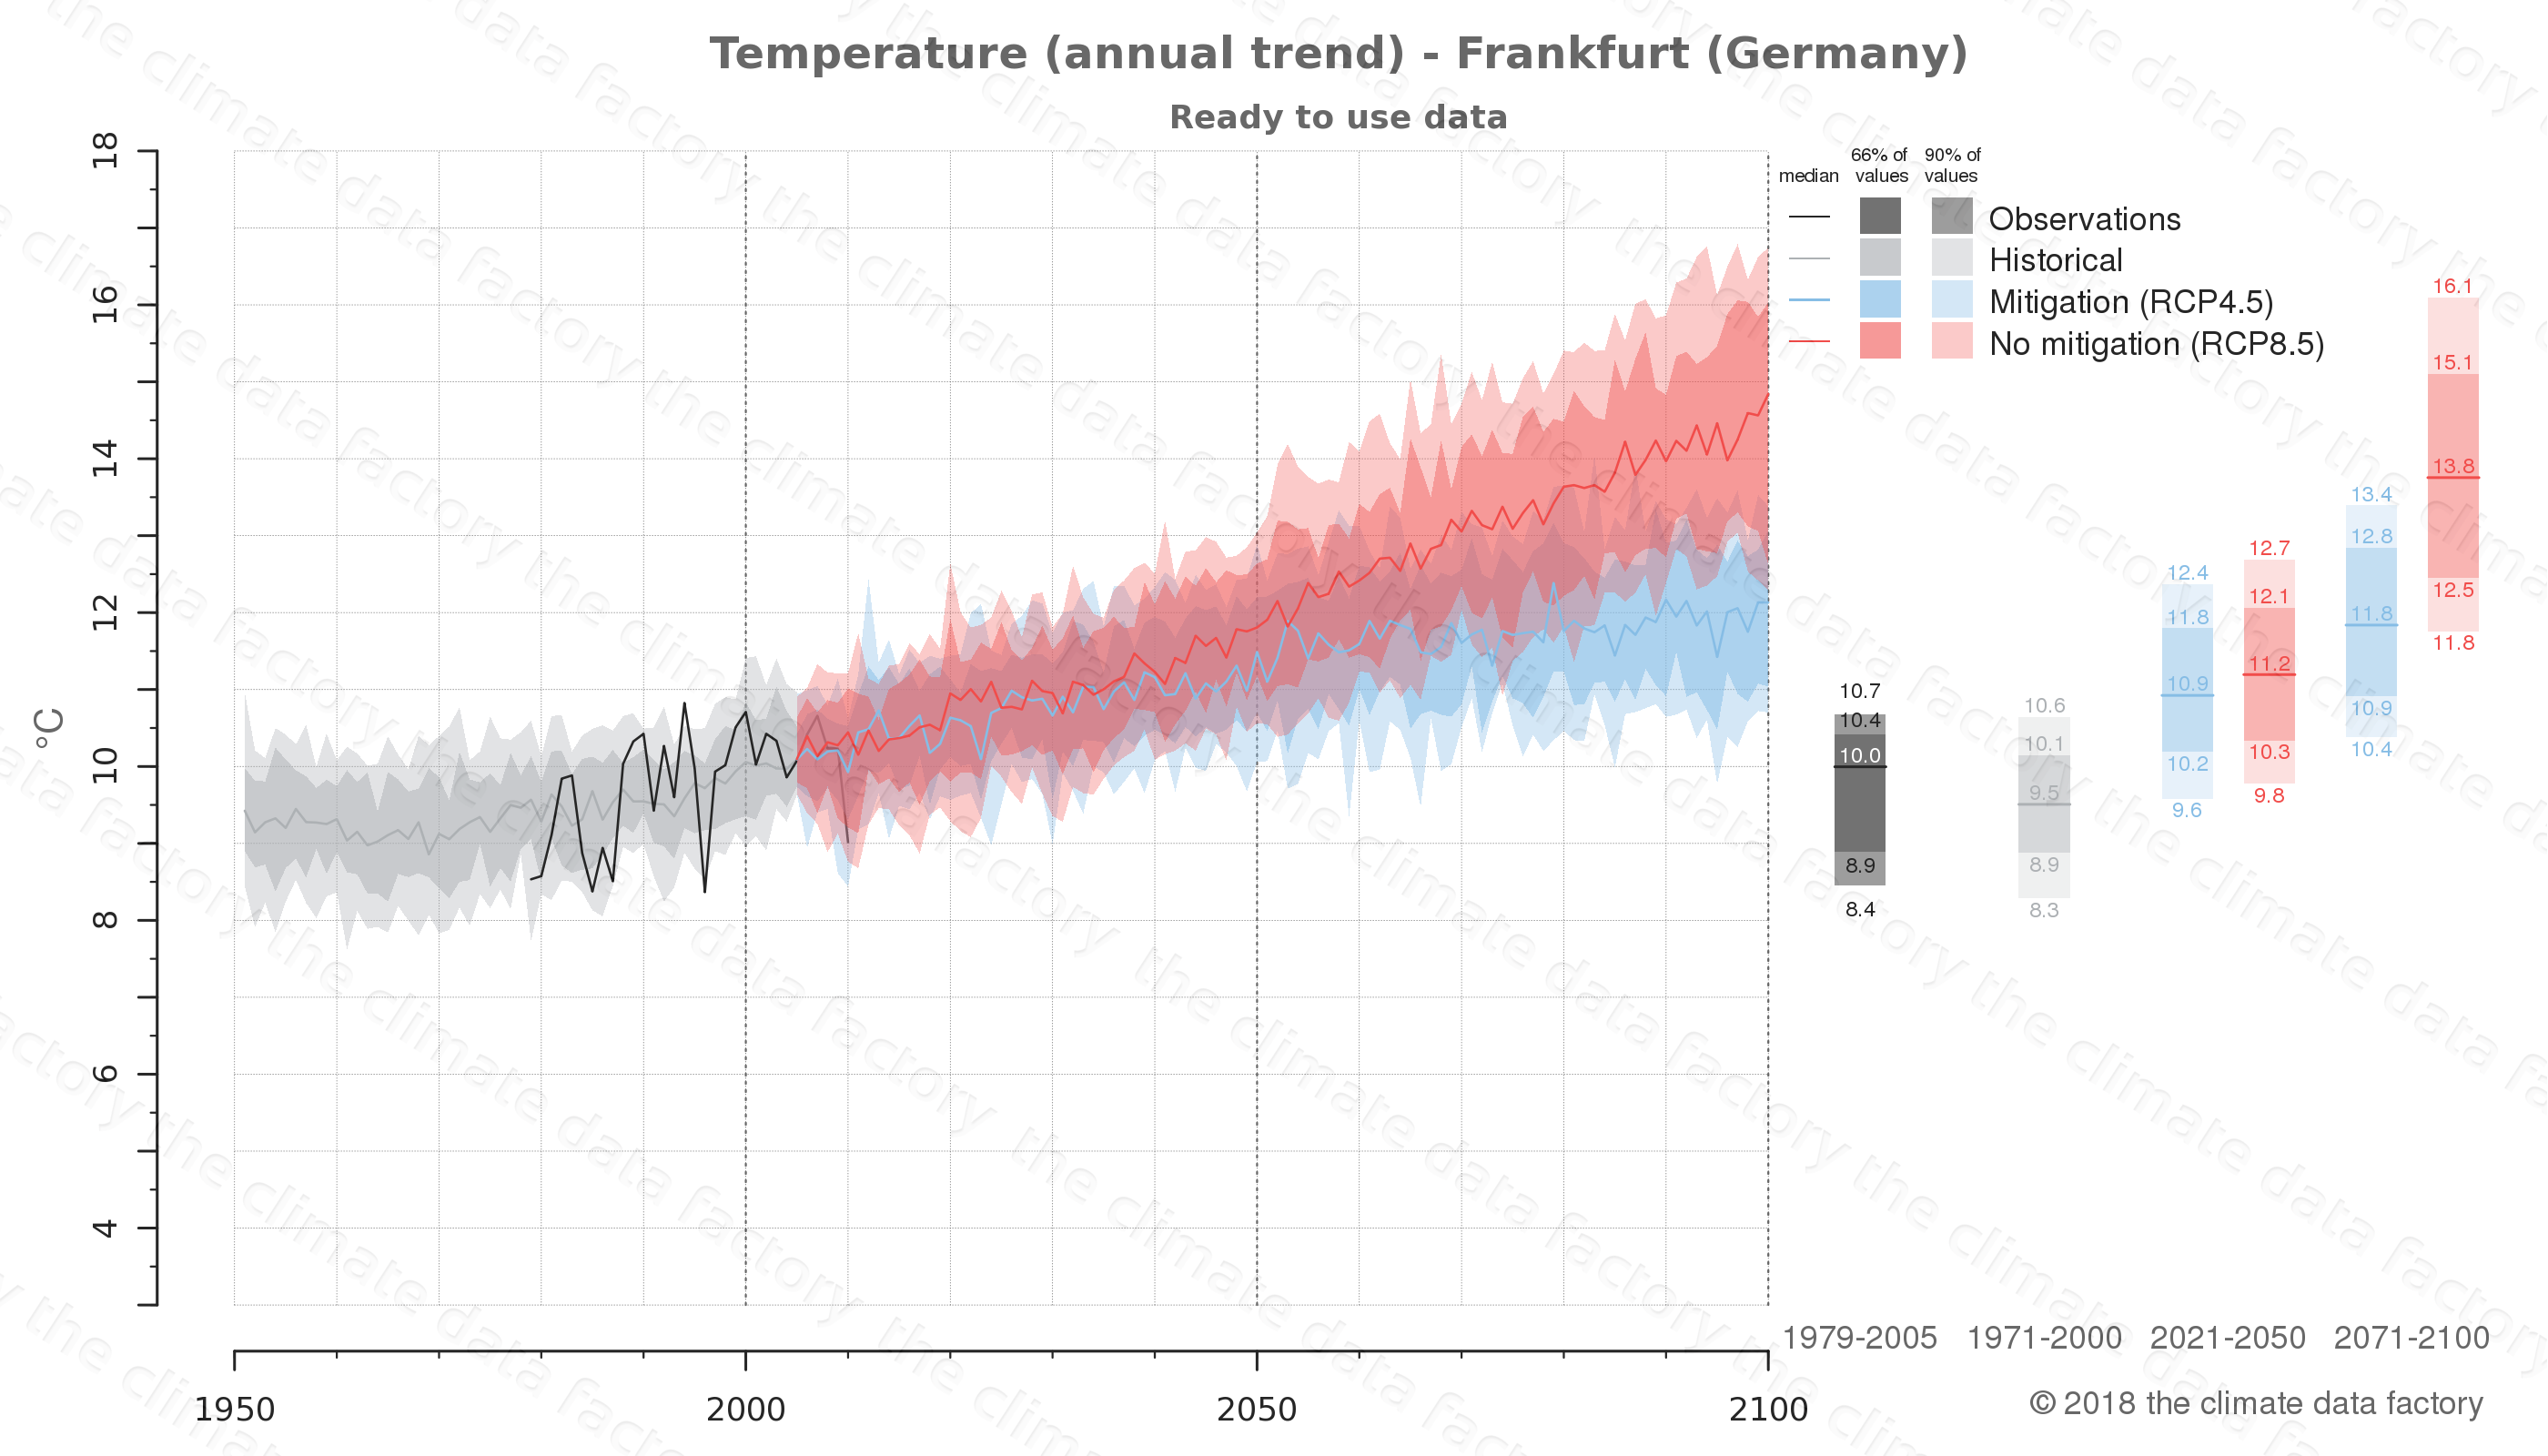 climate change data policy adaptation climate graph city data temperature frankfurt germany